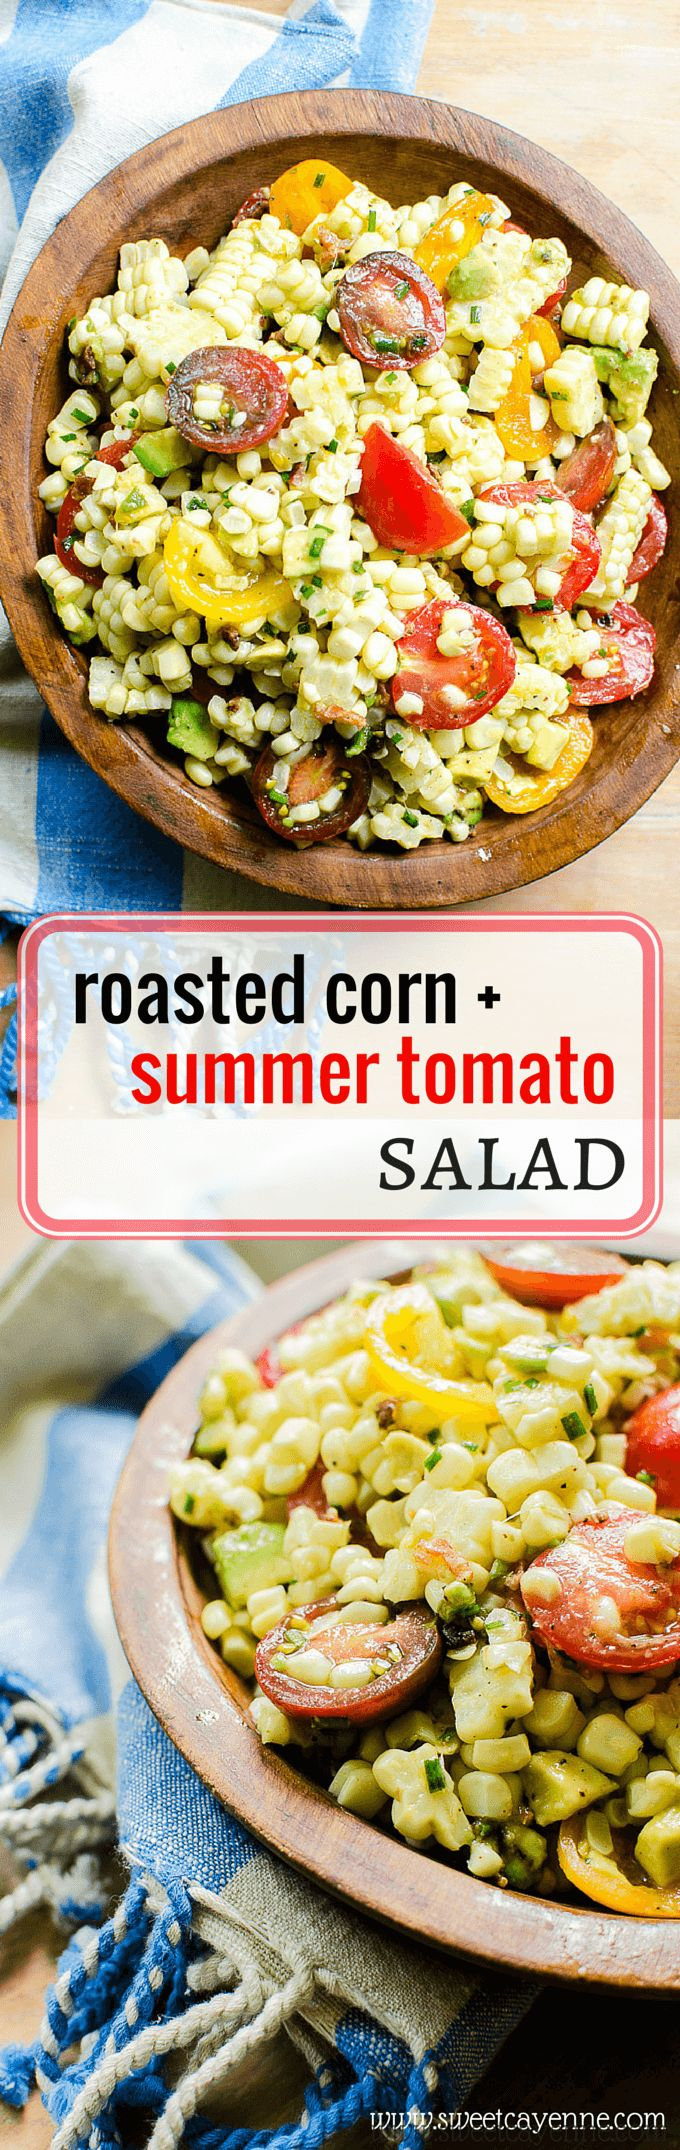 This roasted corn and summer tomato salad is a healthy recipe that goes great with any summer or grilled menu! Make it for the 4th of July this year!